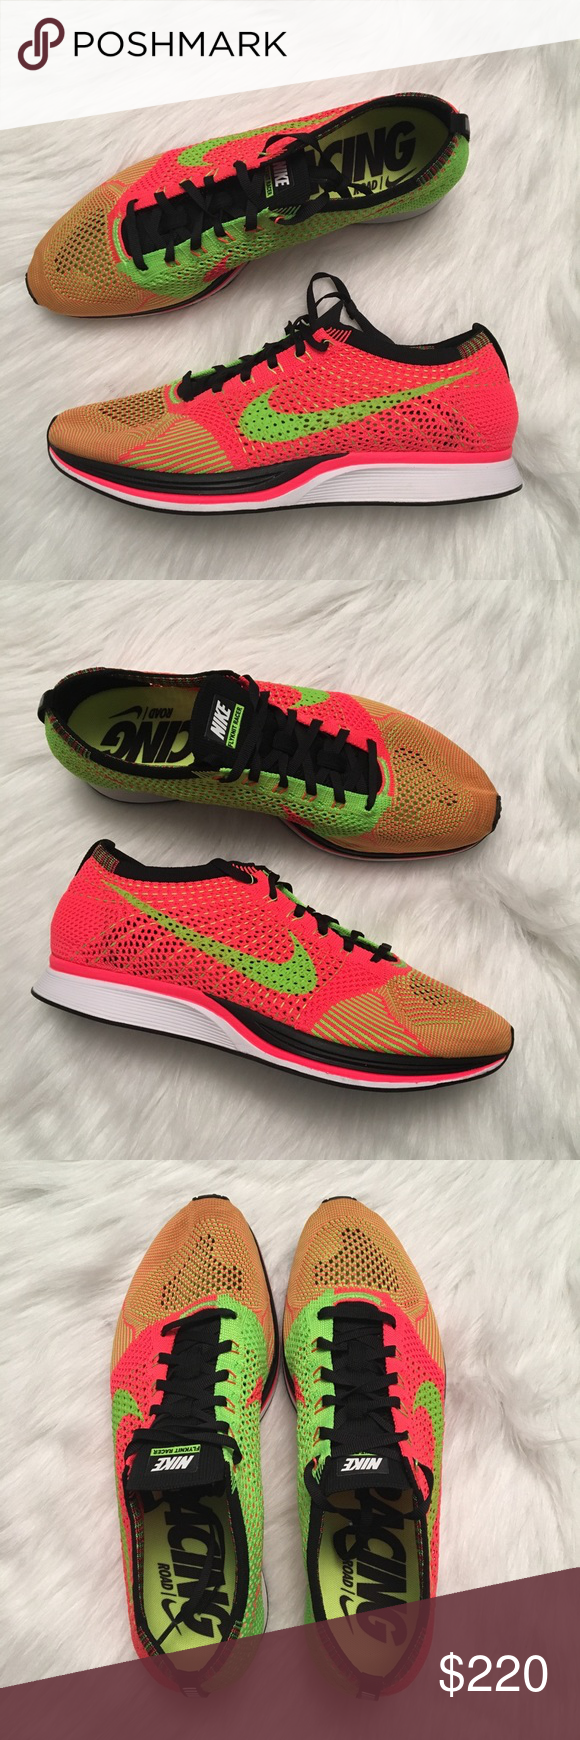 wholesale online the sale of shoes good out x wholesale nike flyknit racer hyper punch price 1b165 2d501